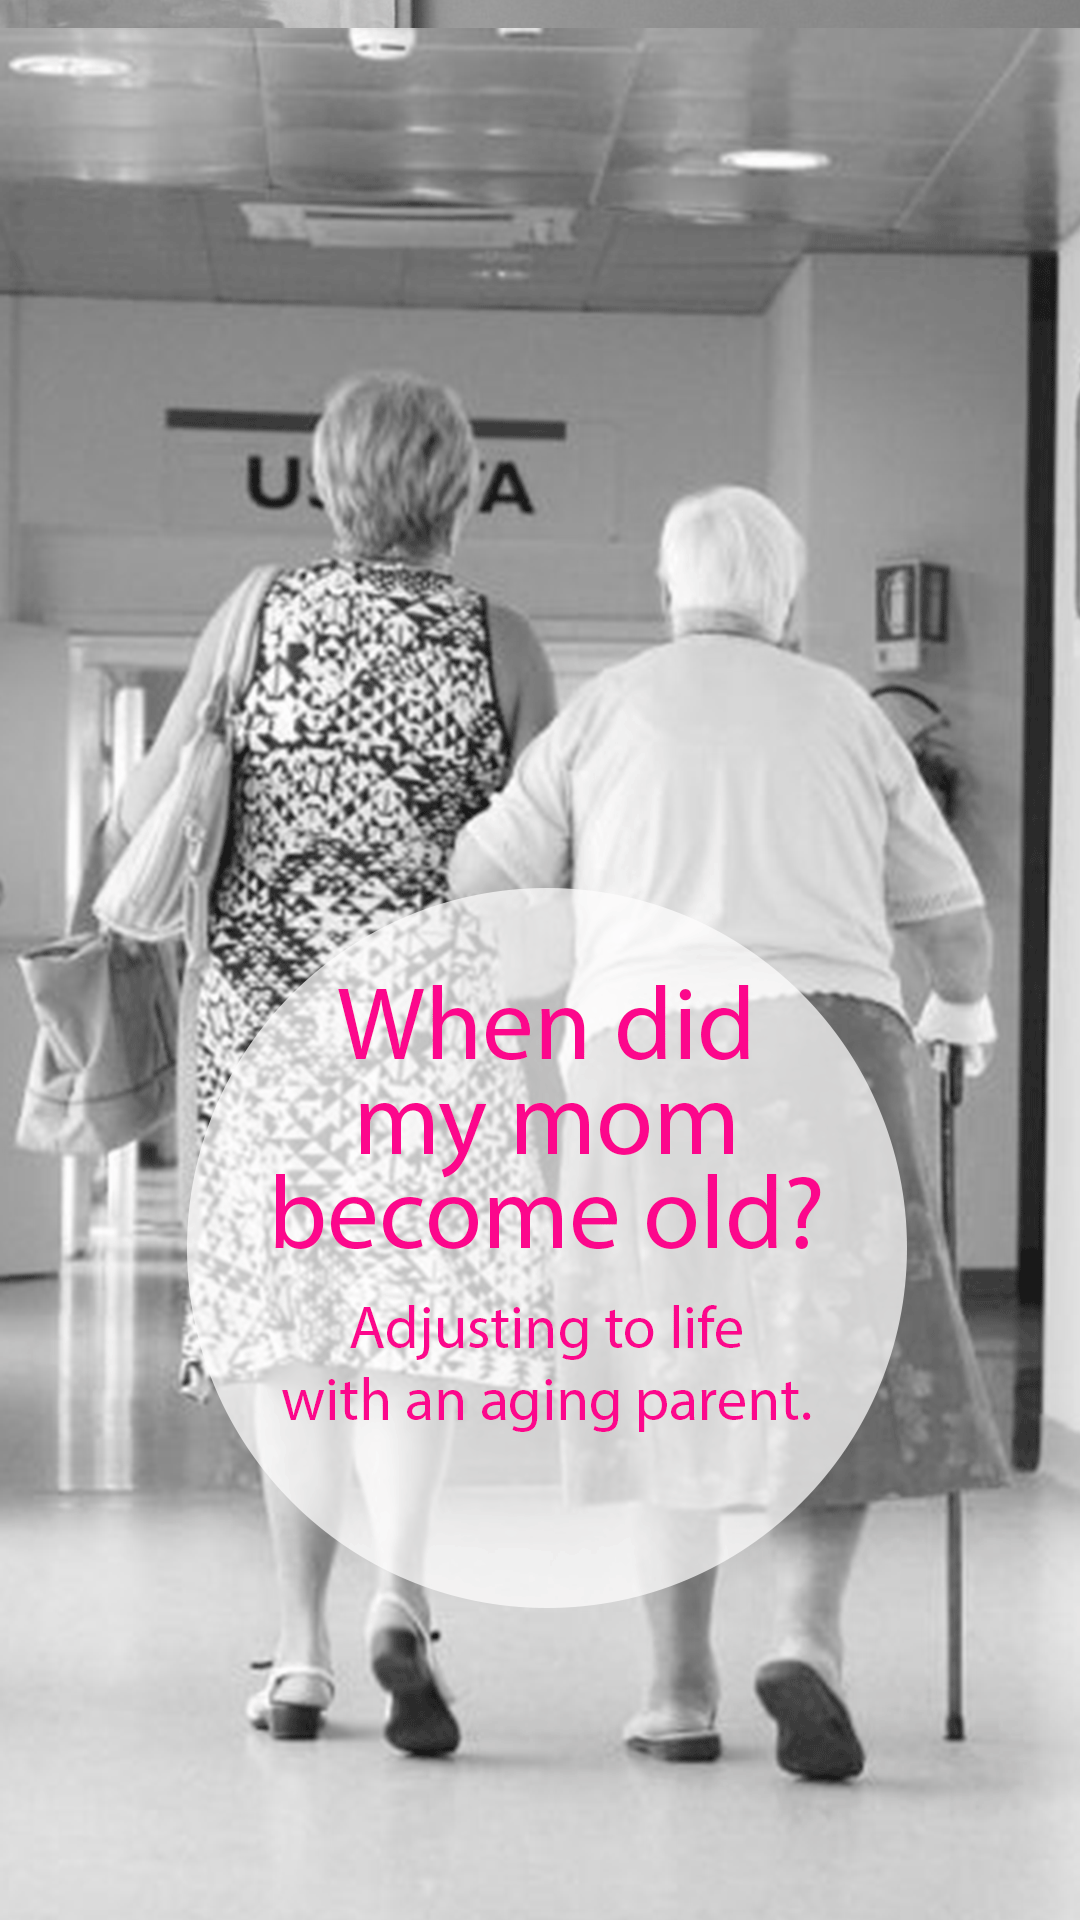 When did my mom become old? Adjusting to life with an aging parent.